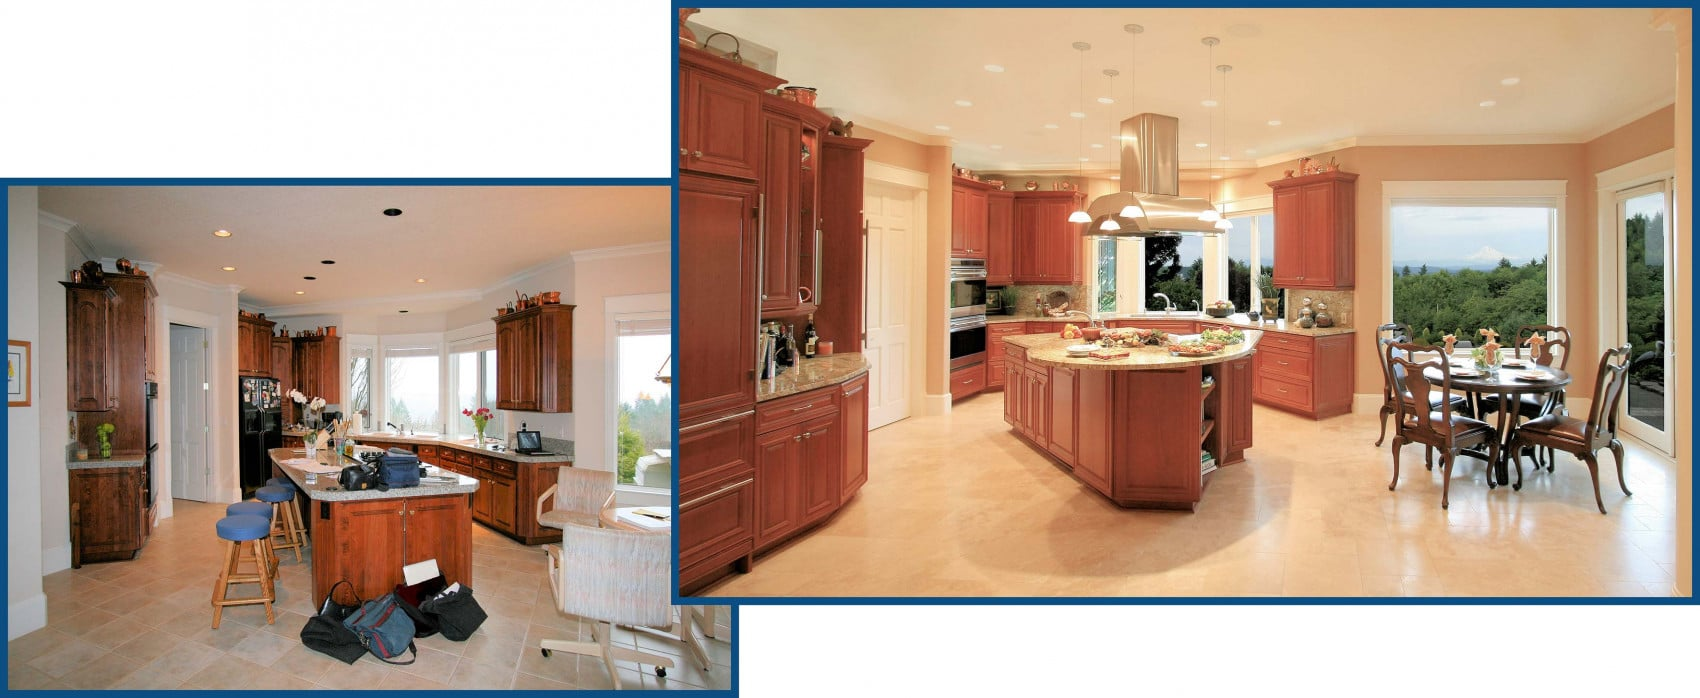 West Linn Kitchen Before and After